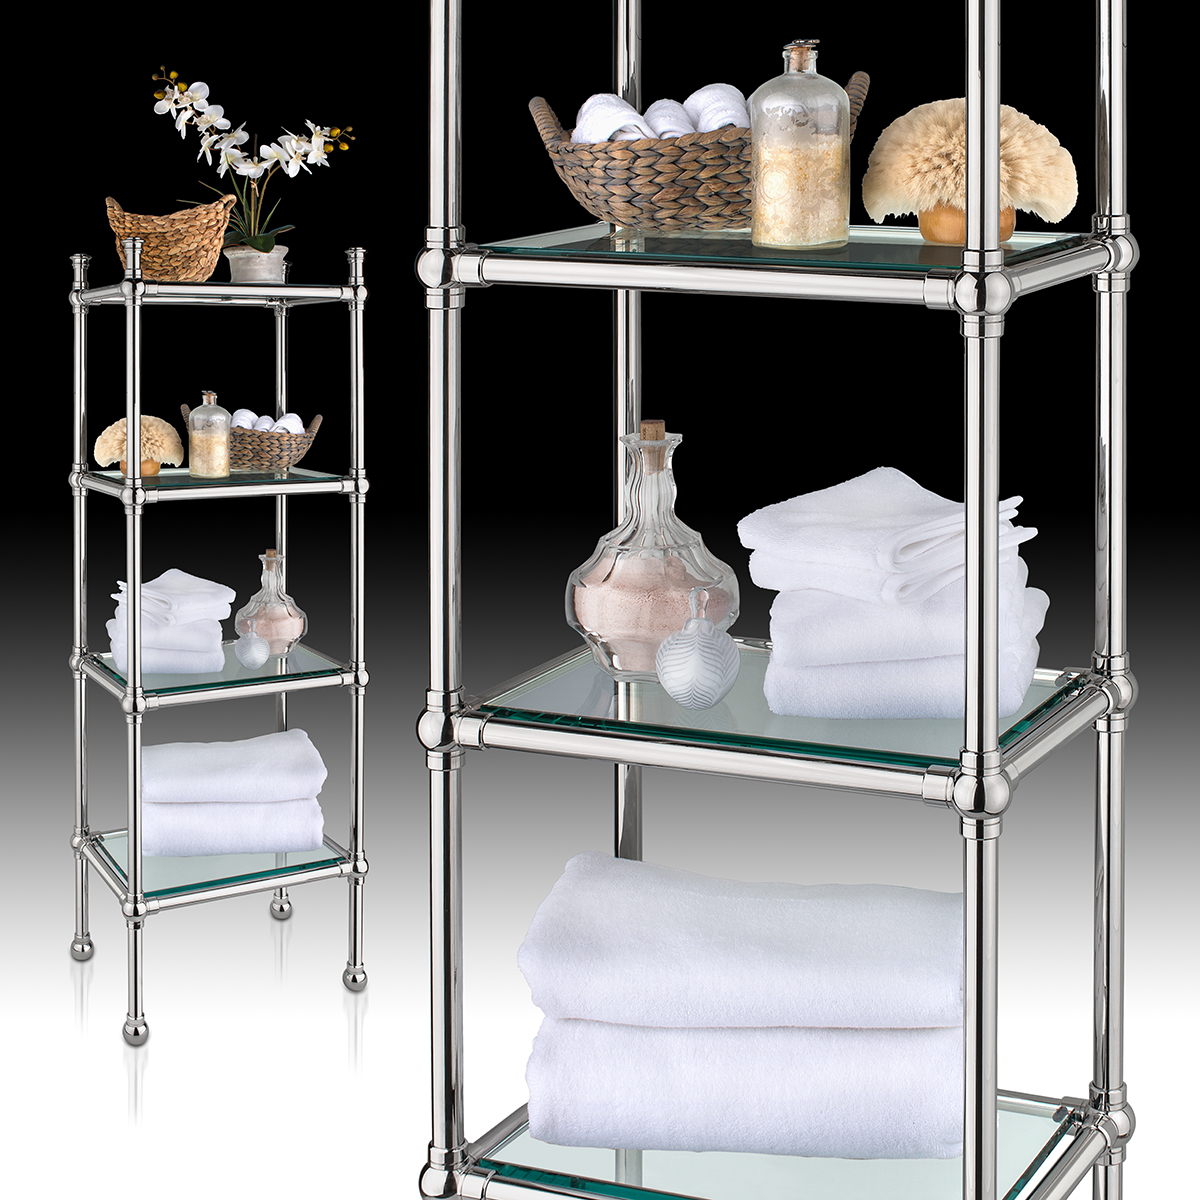 1221-Etagere-with-props-Comp-1200